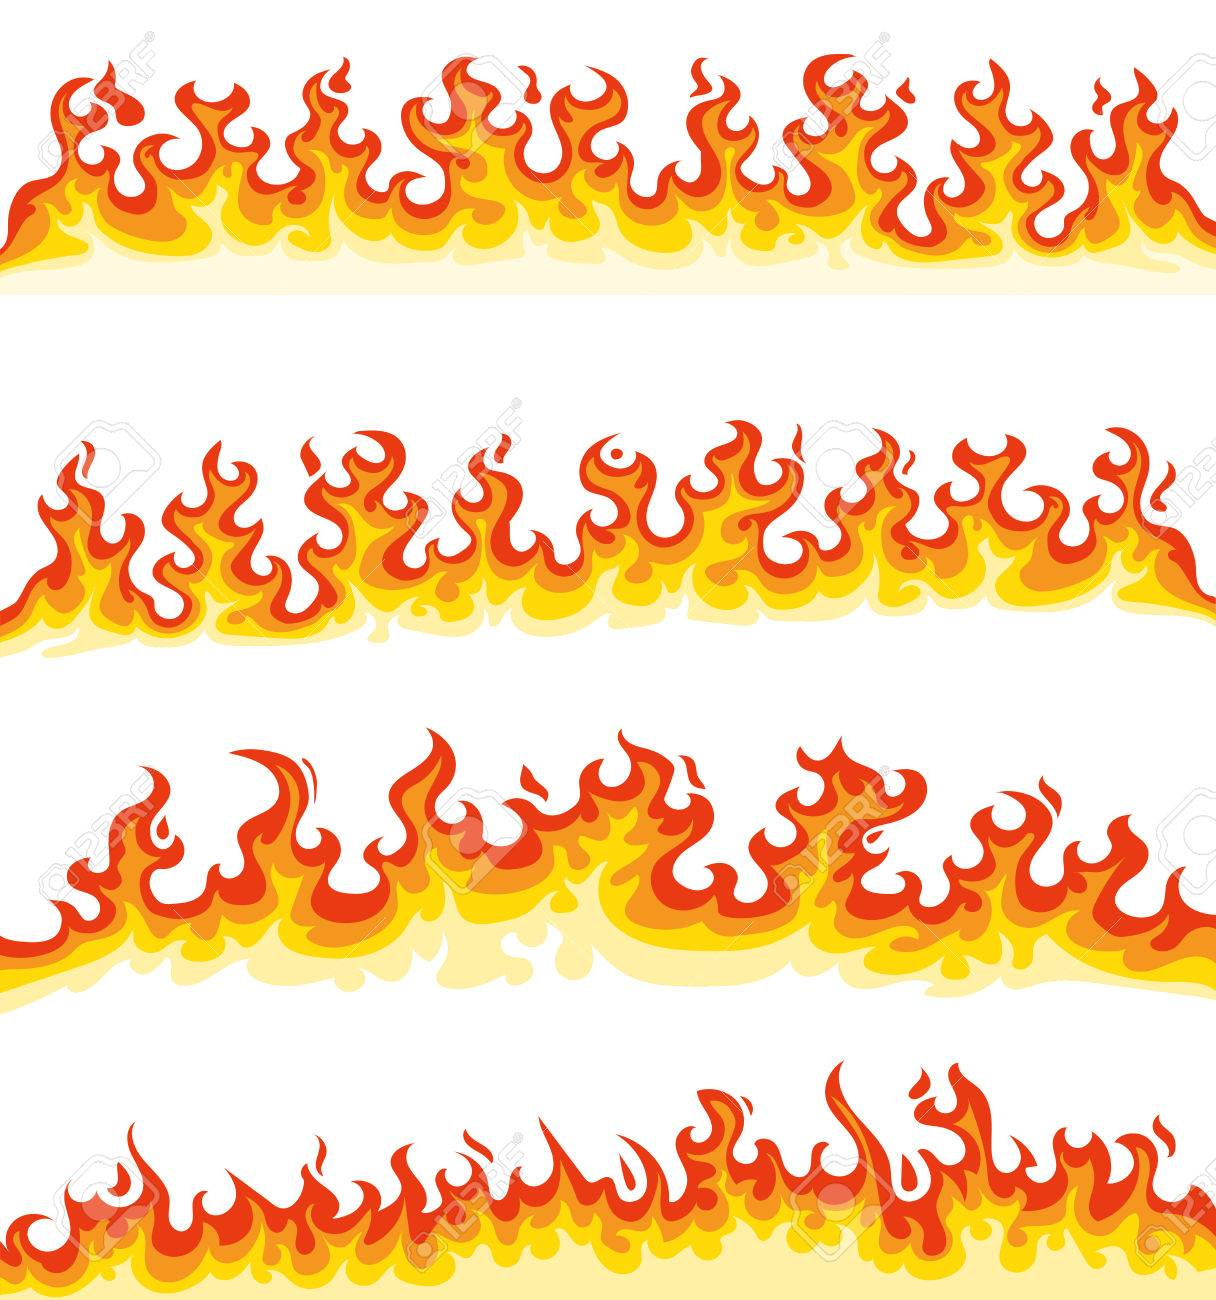 Collection Of Four Horizontal Long Cartoon Flames Royalty Free Cliparts Vectors And Stock Illustration Image 65573865 Seeking for free cartoon flames png images? collection of four horizontal long cartoon flames royalty free cliparts vectors and stock illustration image 65573865